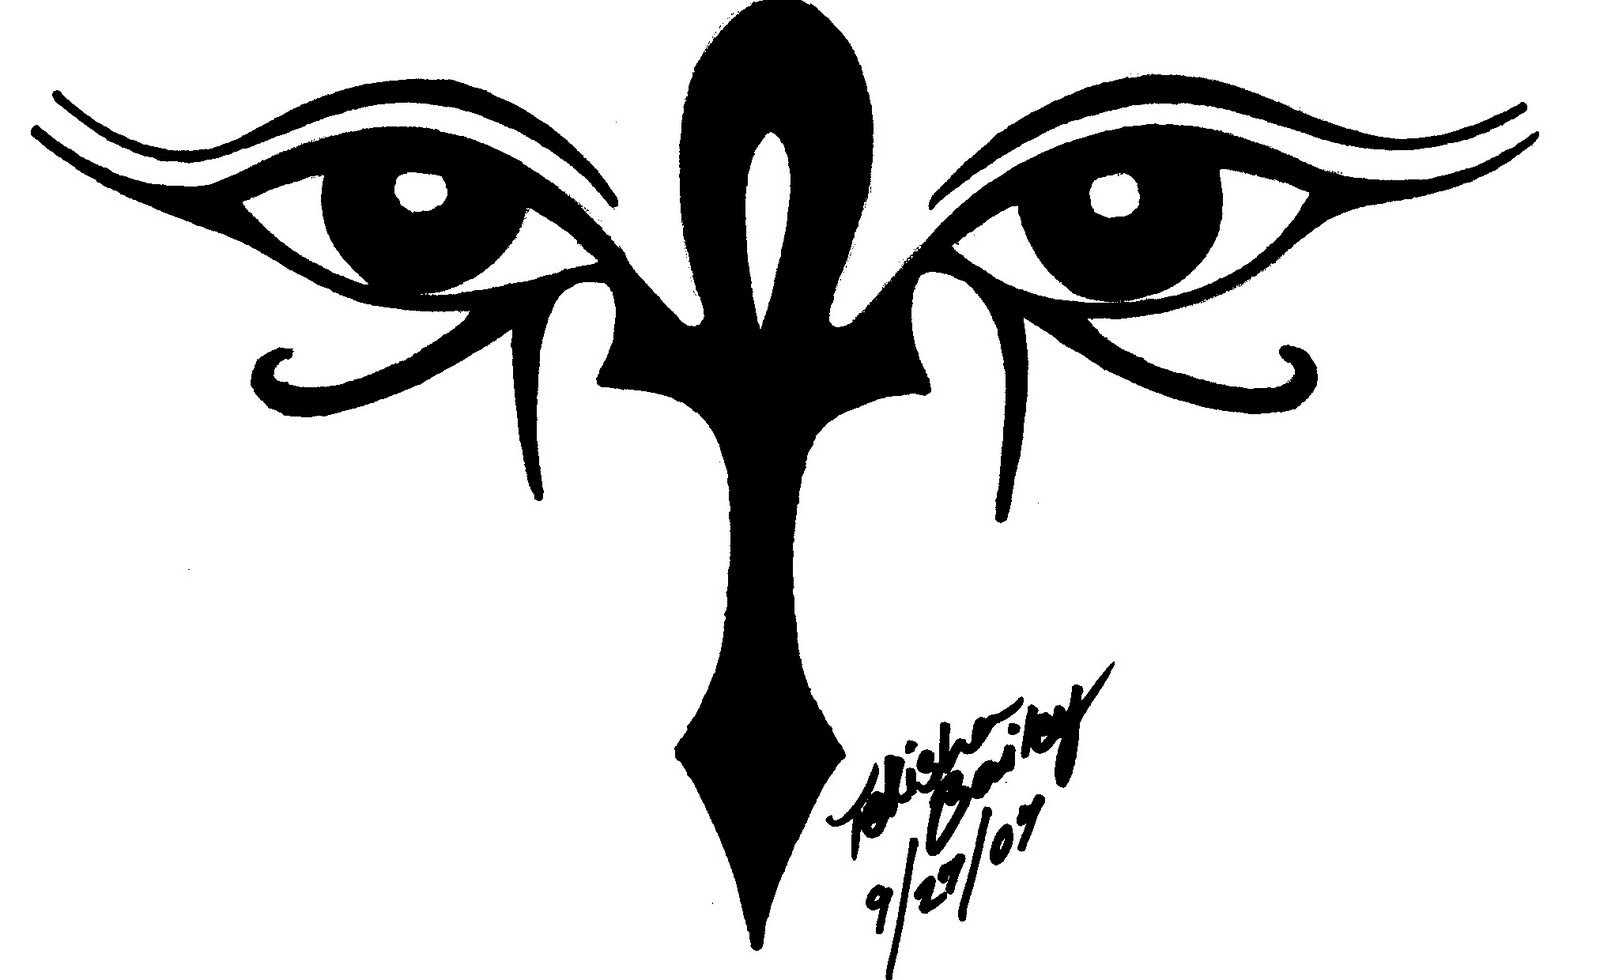 ankh and eye of horus